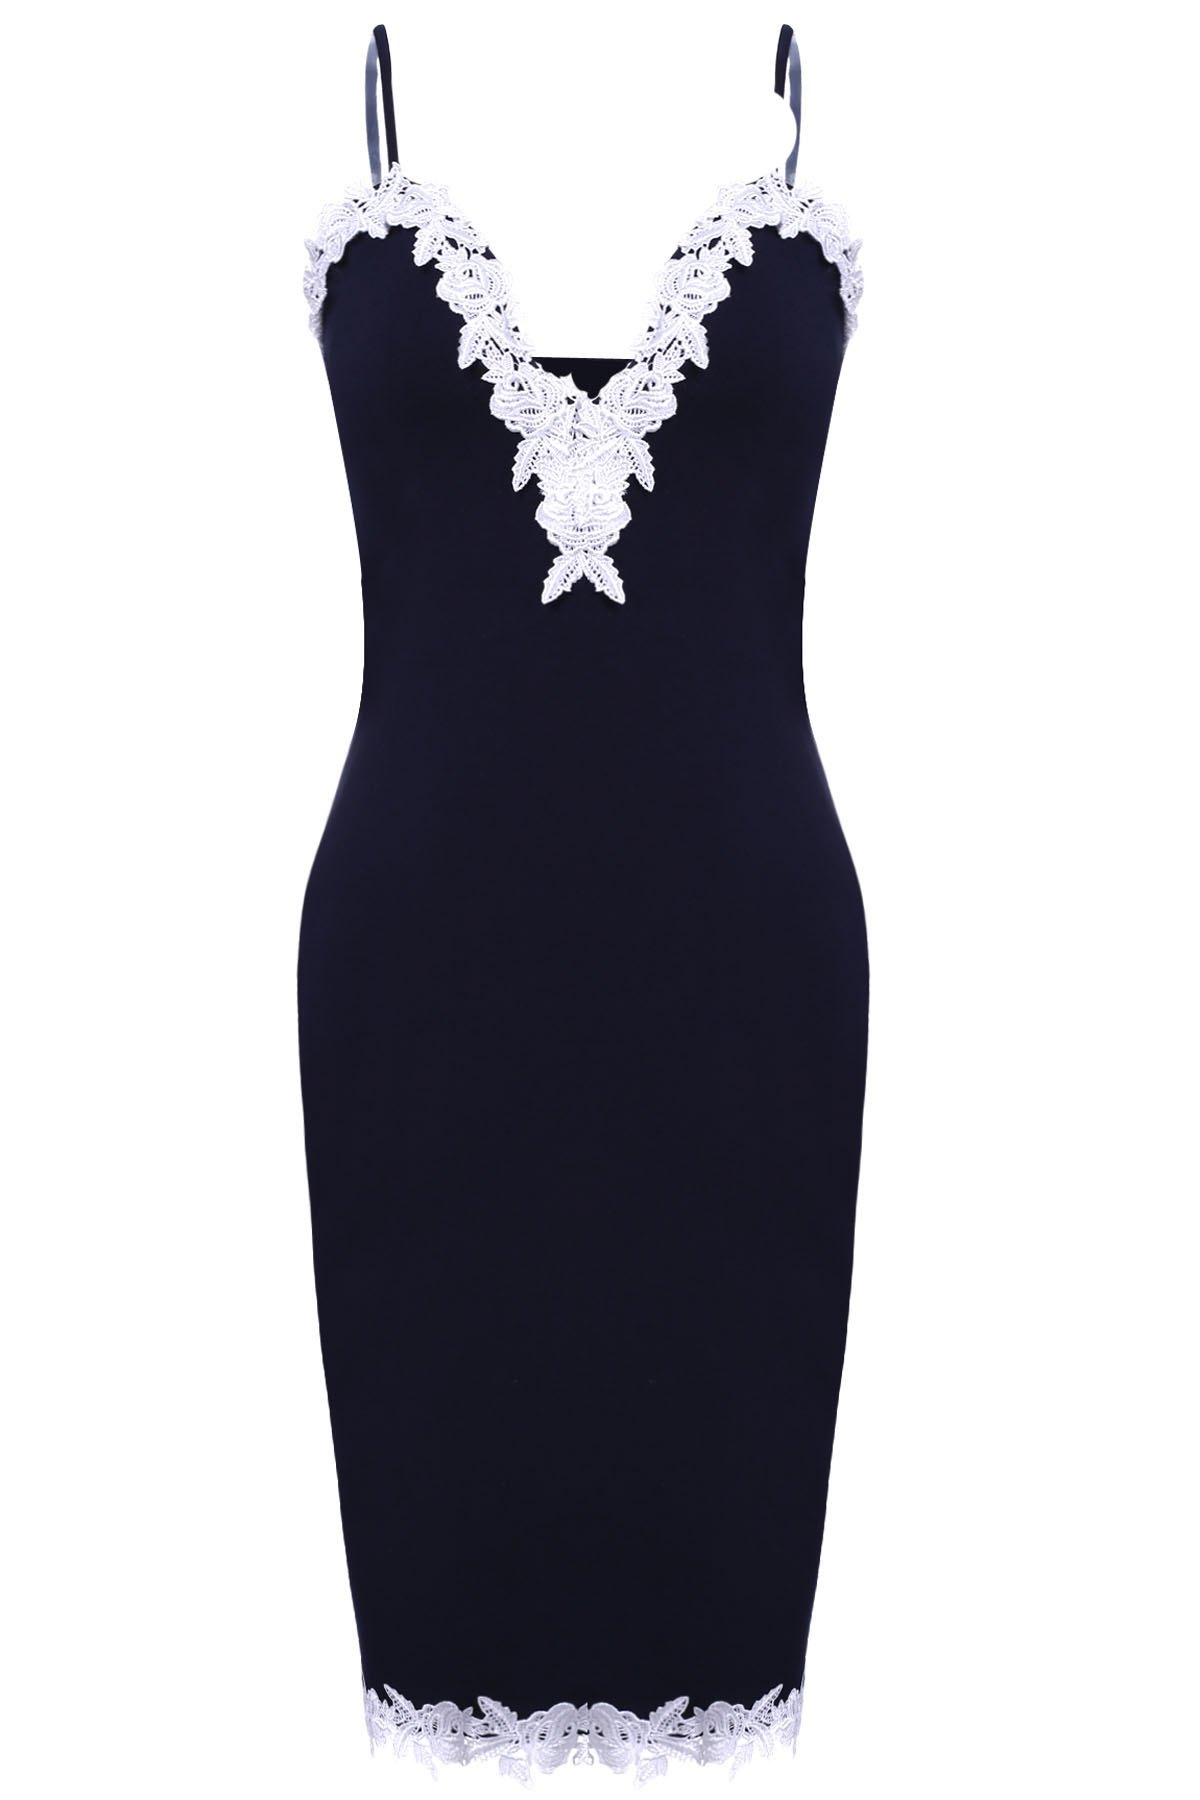 Sexy Ruffled Lace Spliced Spaghetti Strap Bodycon Dress For Women - PURPLISH BLUE S